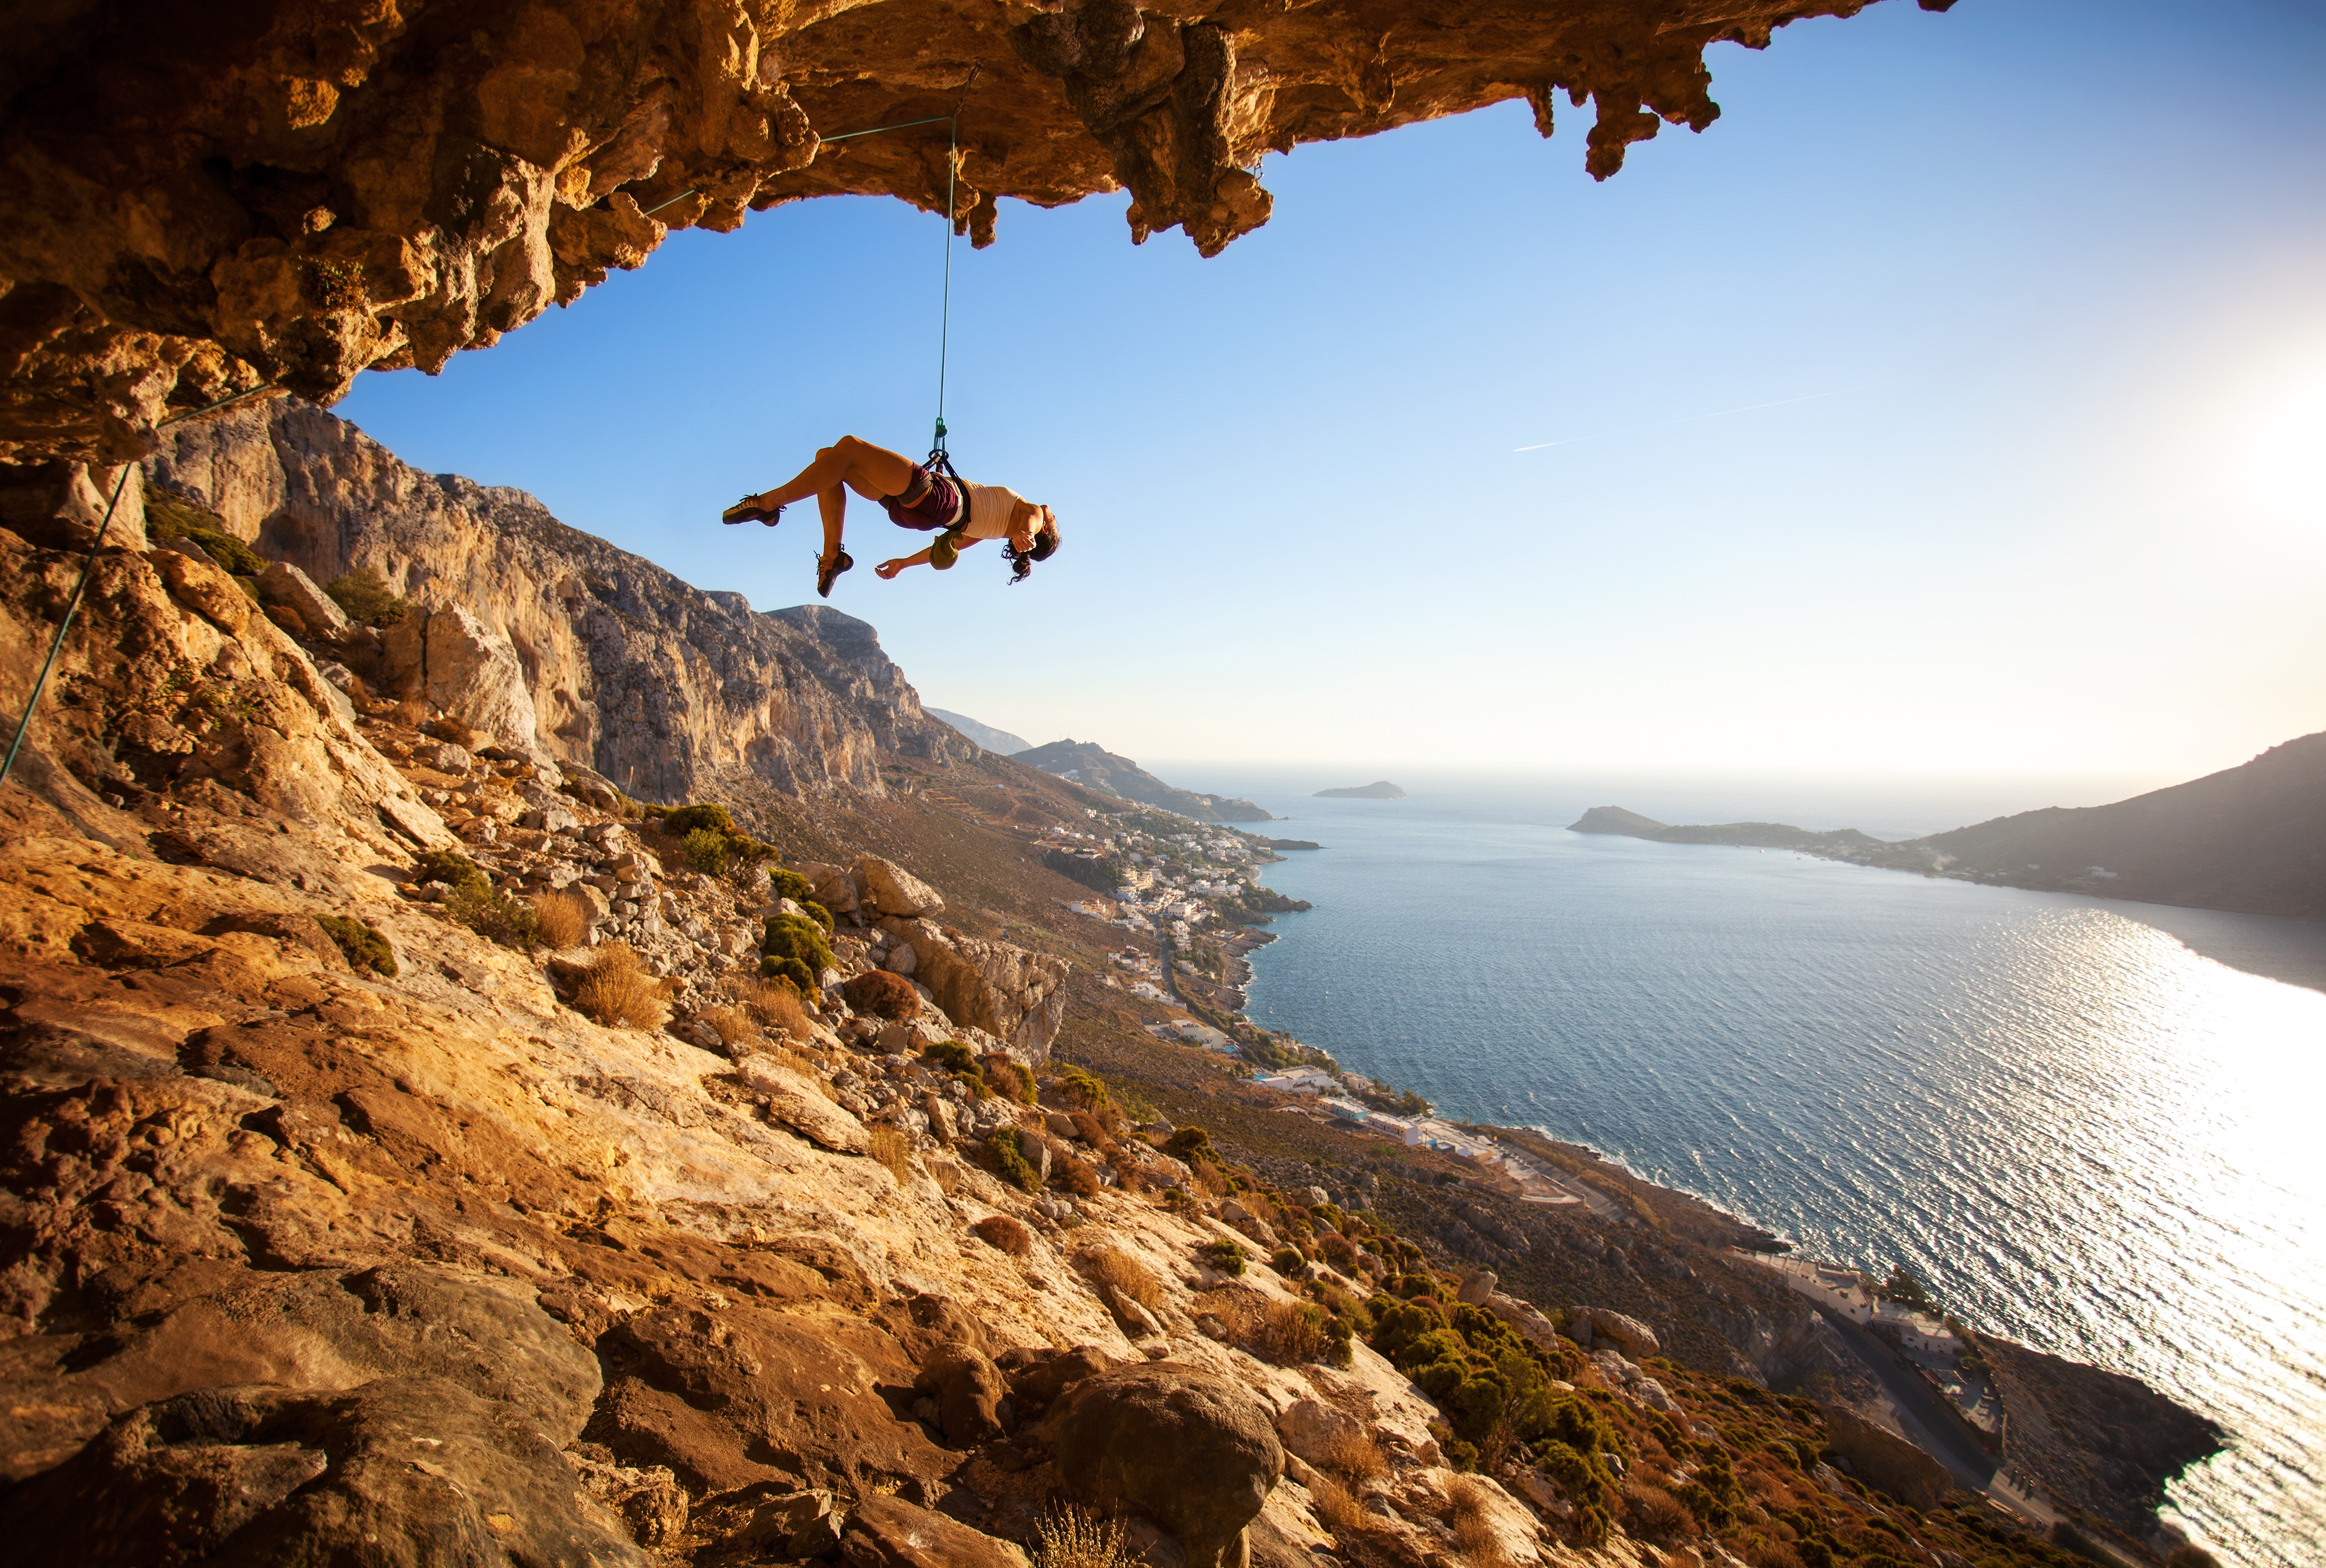 5 CRUCIAL Things All Climbers Should Know